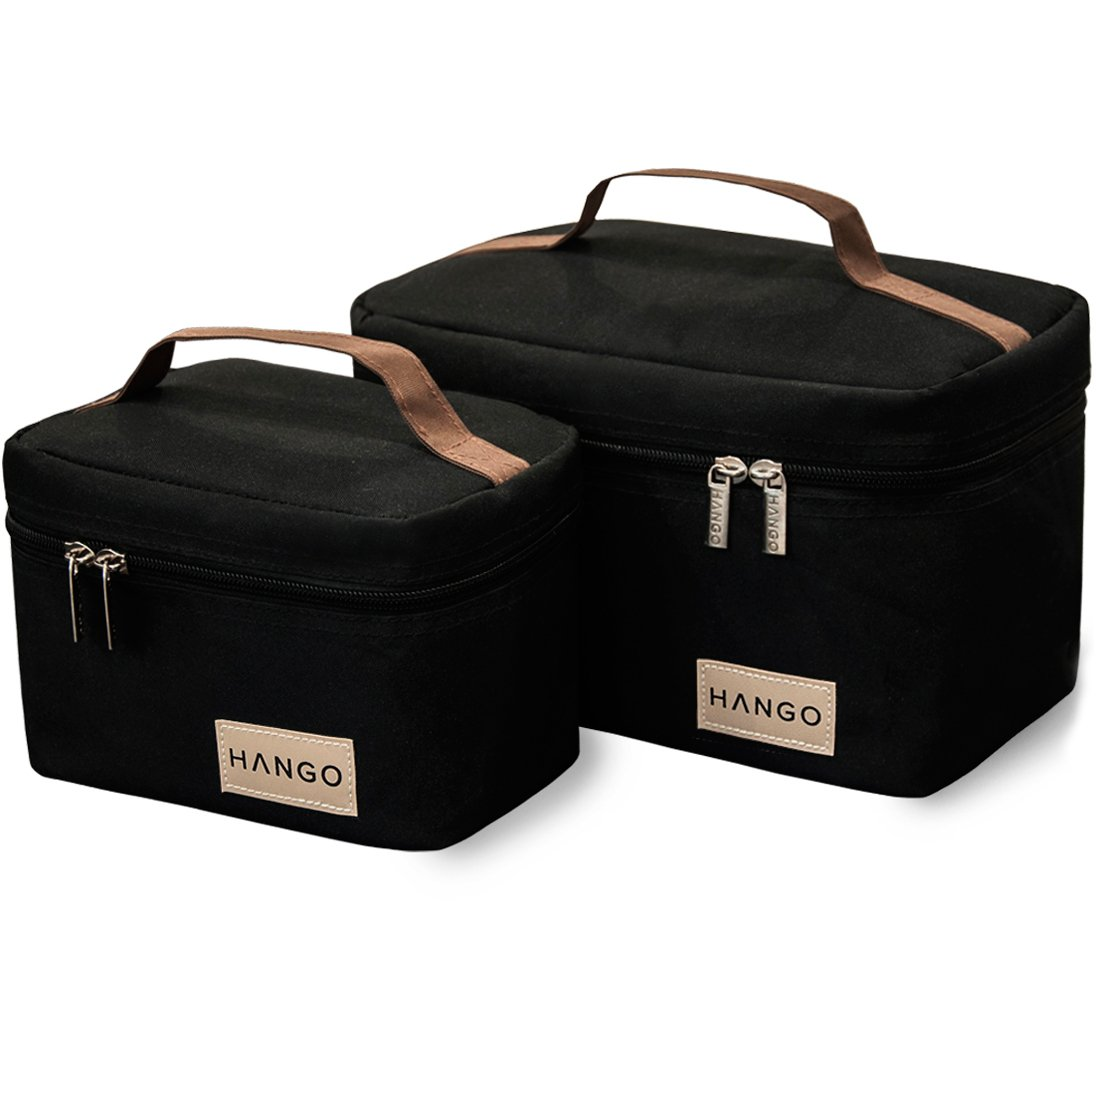 Hango Adult Lunch Box Insulated Lunch Bag Large Cooler Tote Bag (Set of 2 Sizes) For Men and Women, Black by Attican